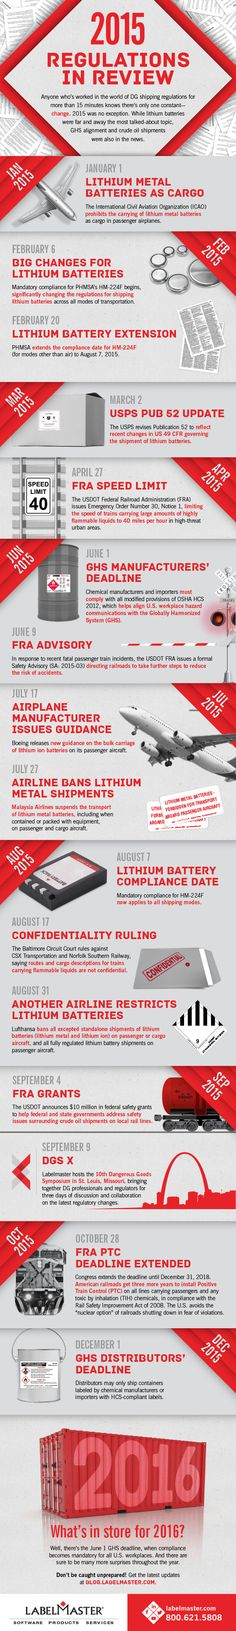 Infographic | 2015 Regulations in Review Emergency orders and advisories? Check. Airlines making their own rules? Check. Congress playing politics with key deadlines? No surprise to anyone who's worked in the world of DG shipping regulations for more than 15 minutes. We know there's only one constant—change.